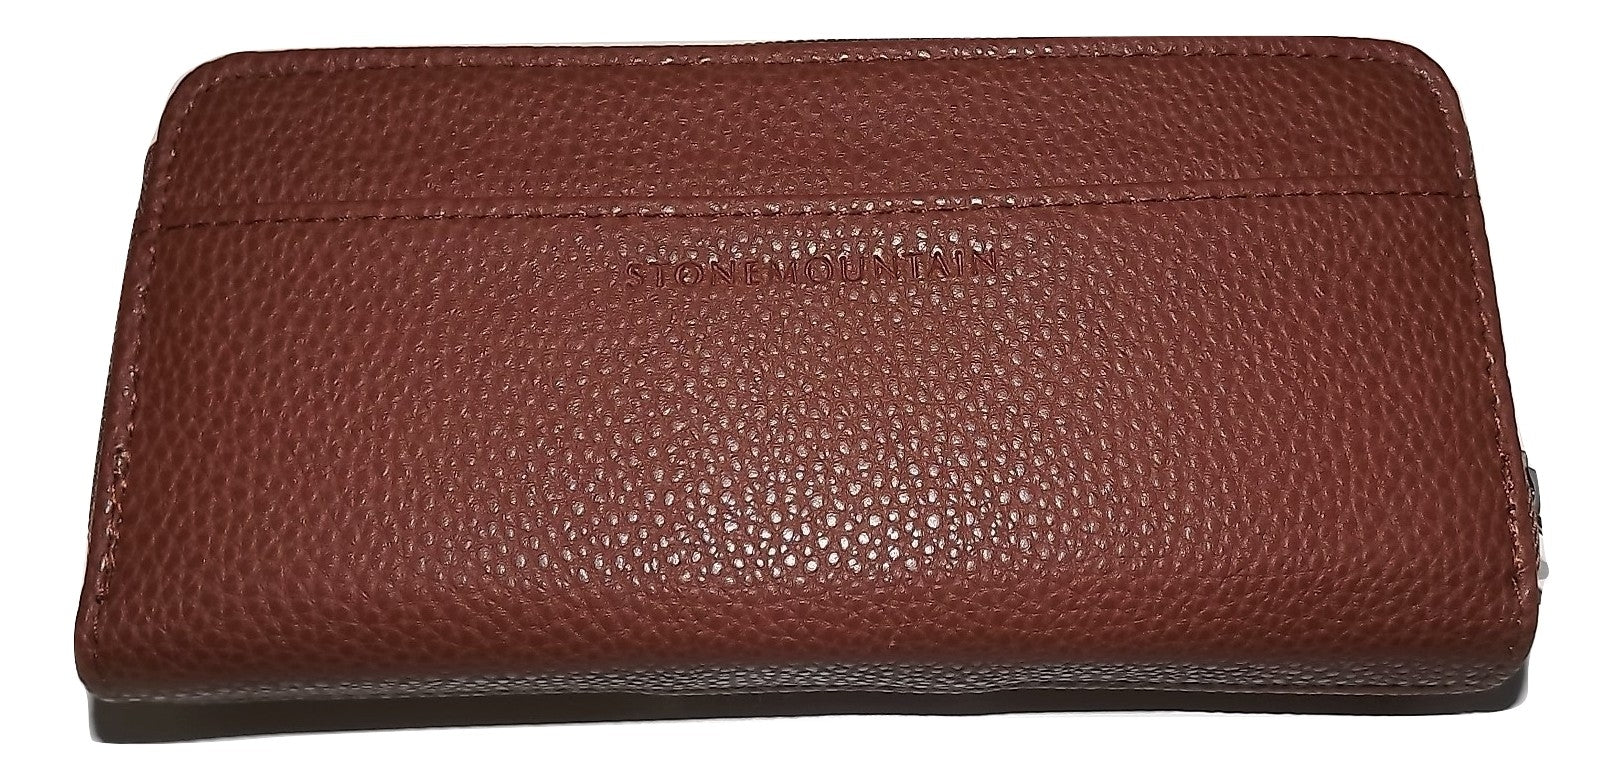 Stone Mountain Women S Leather Zip Checkbook Clutch Wallet Brown